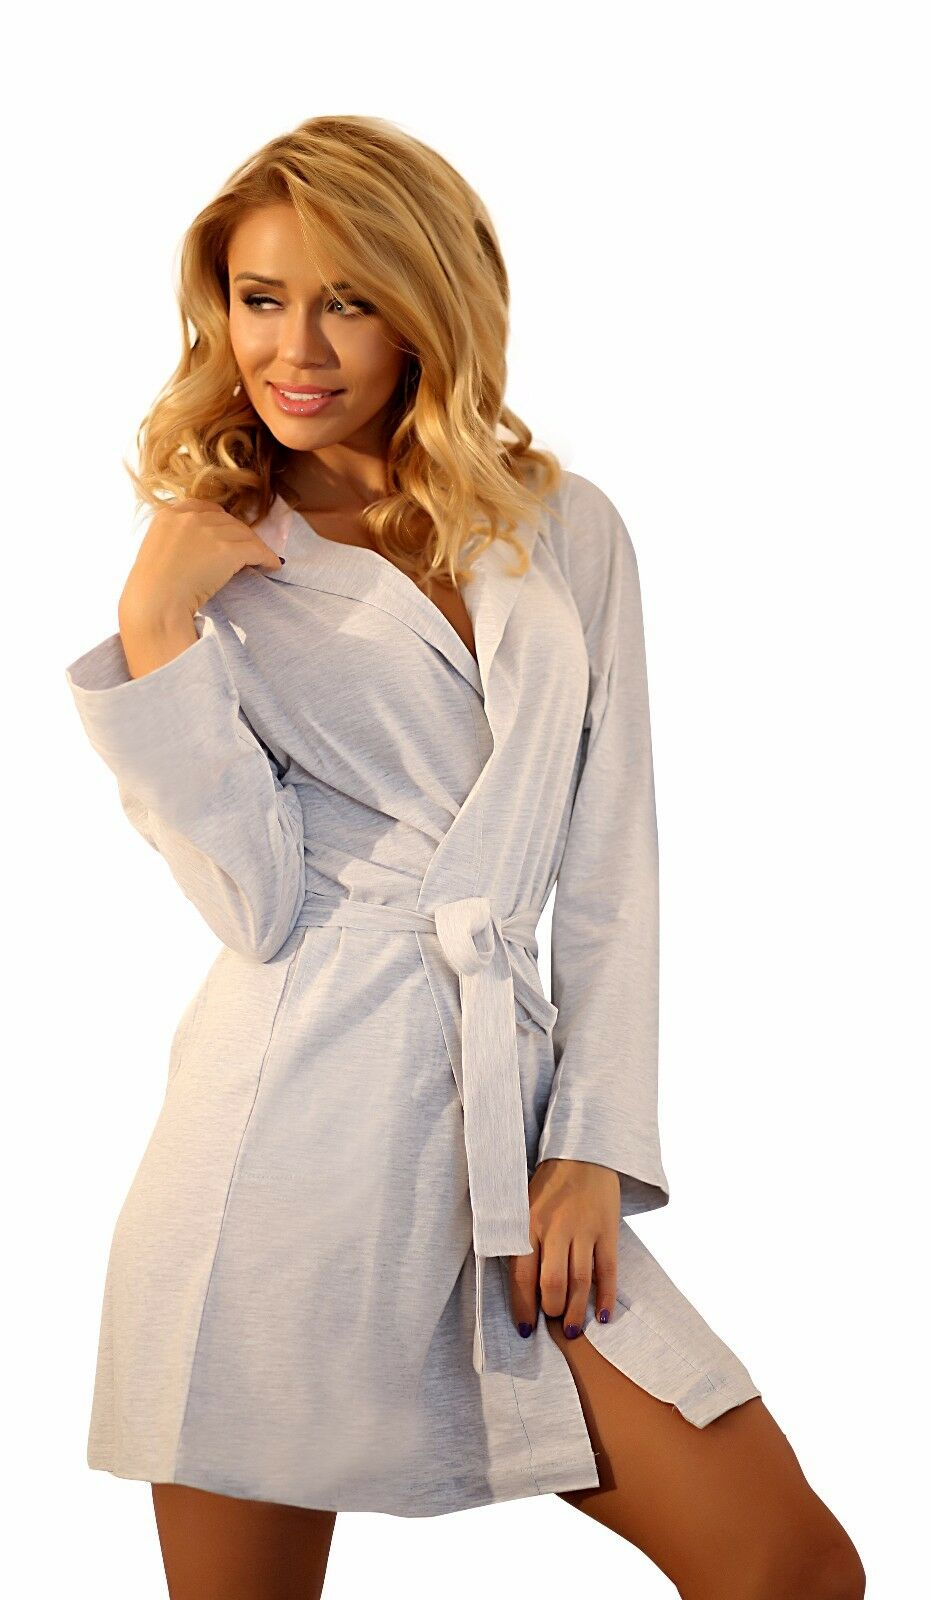 Girls Cotton Dressing Gown Housecoat Hooded Robe Bathrobe for Women ...